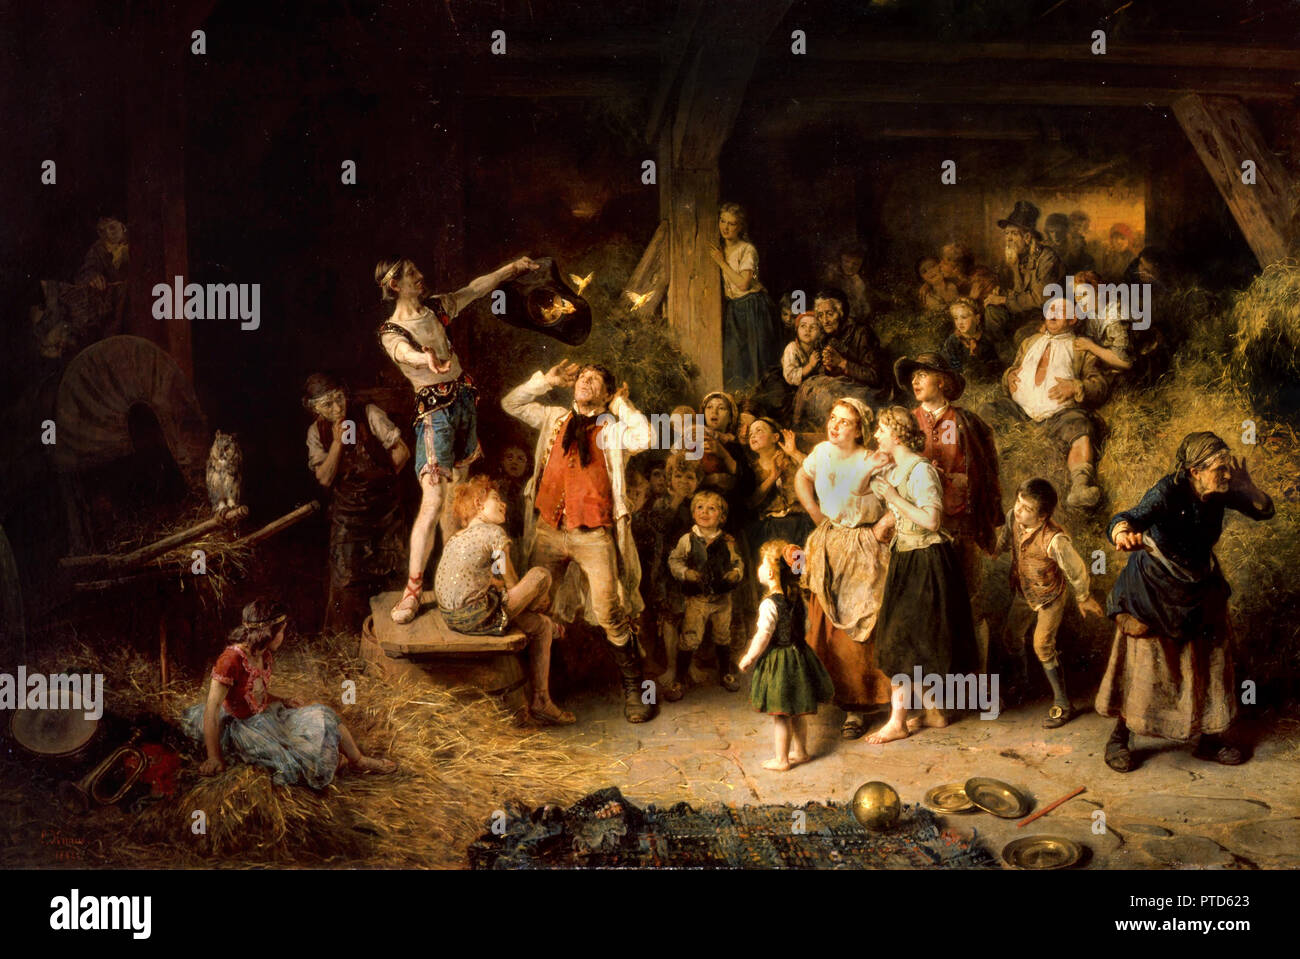 Ludwig Knaus, The Magician in the Barn 1862 Oil on panel, Grohmann Museum, Milwaukee, USA. - Stock Image